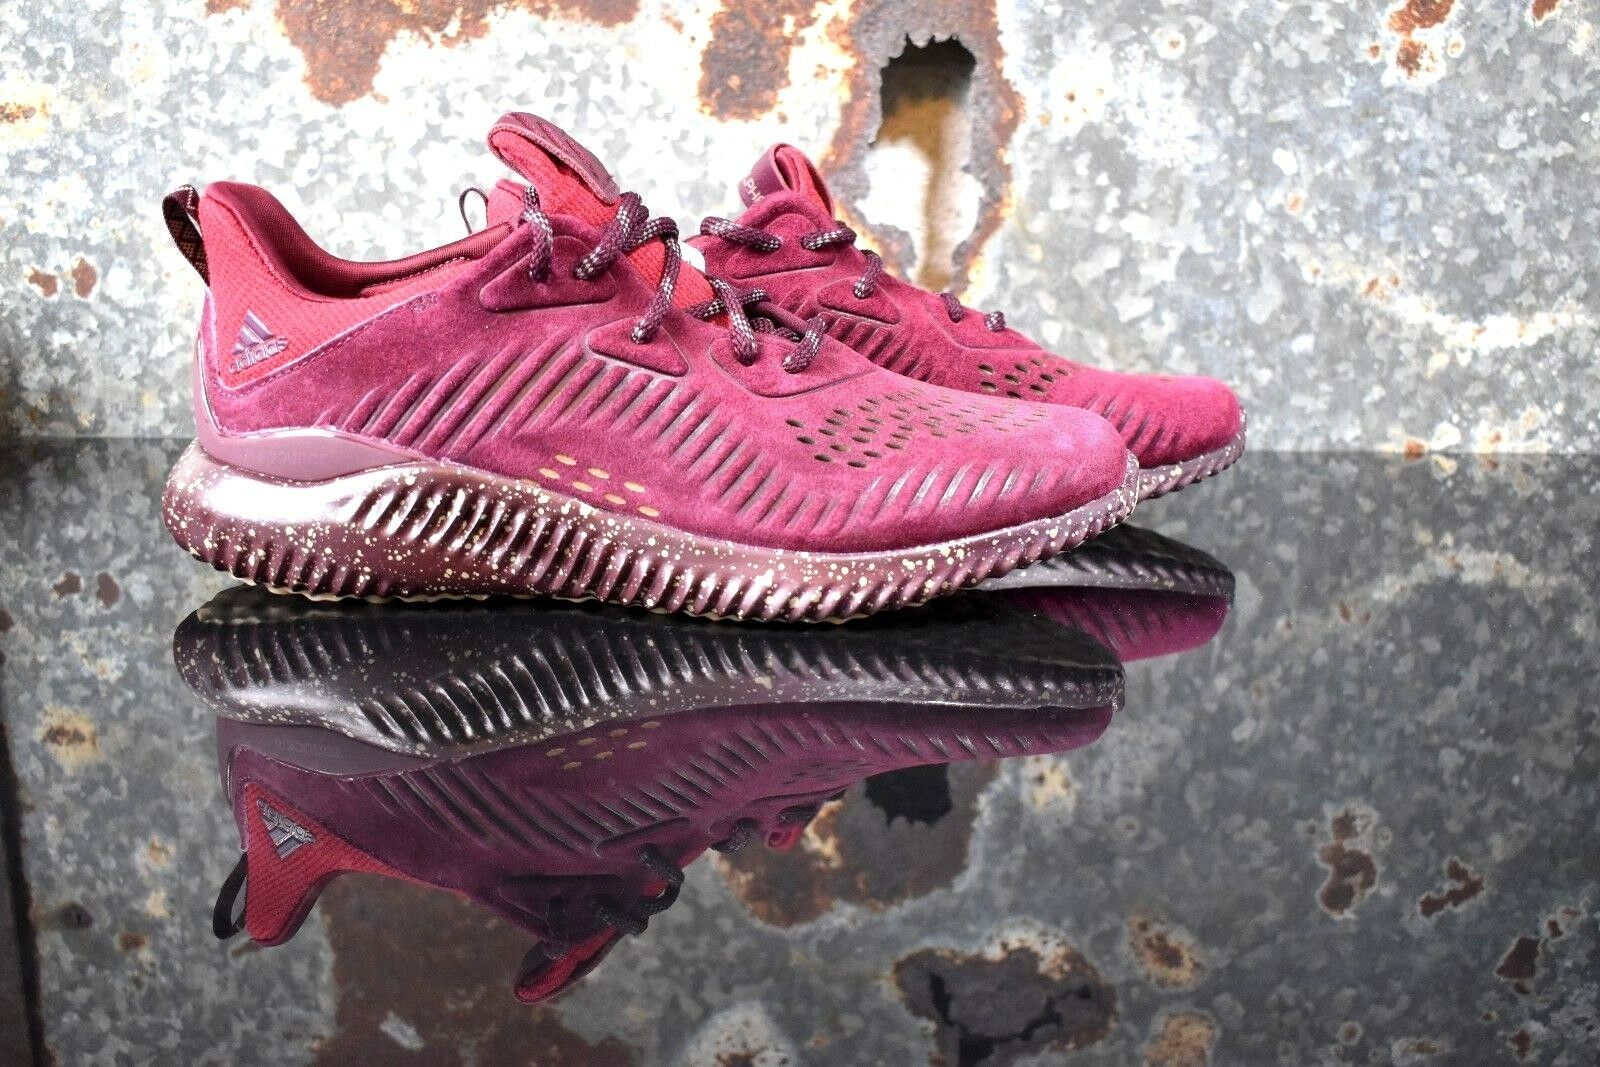 Adidas Men's AlphaBounce Suede Leather Shoes Maroon CQ1189 - Multiple Sizes